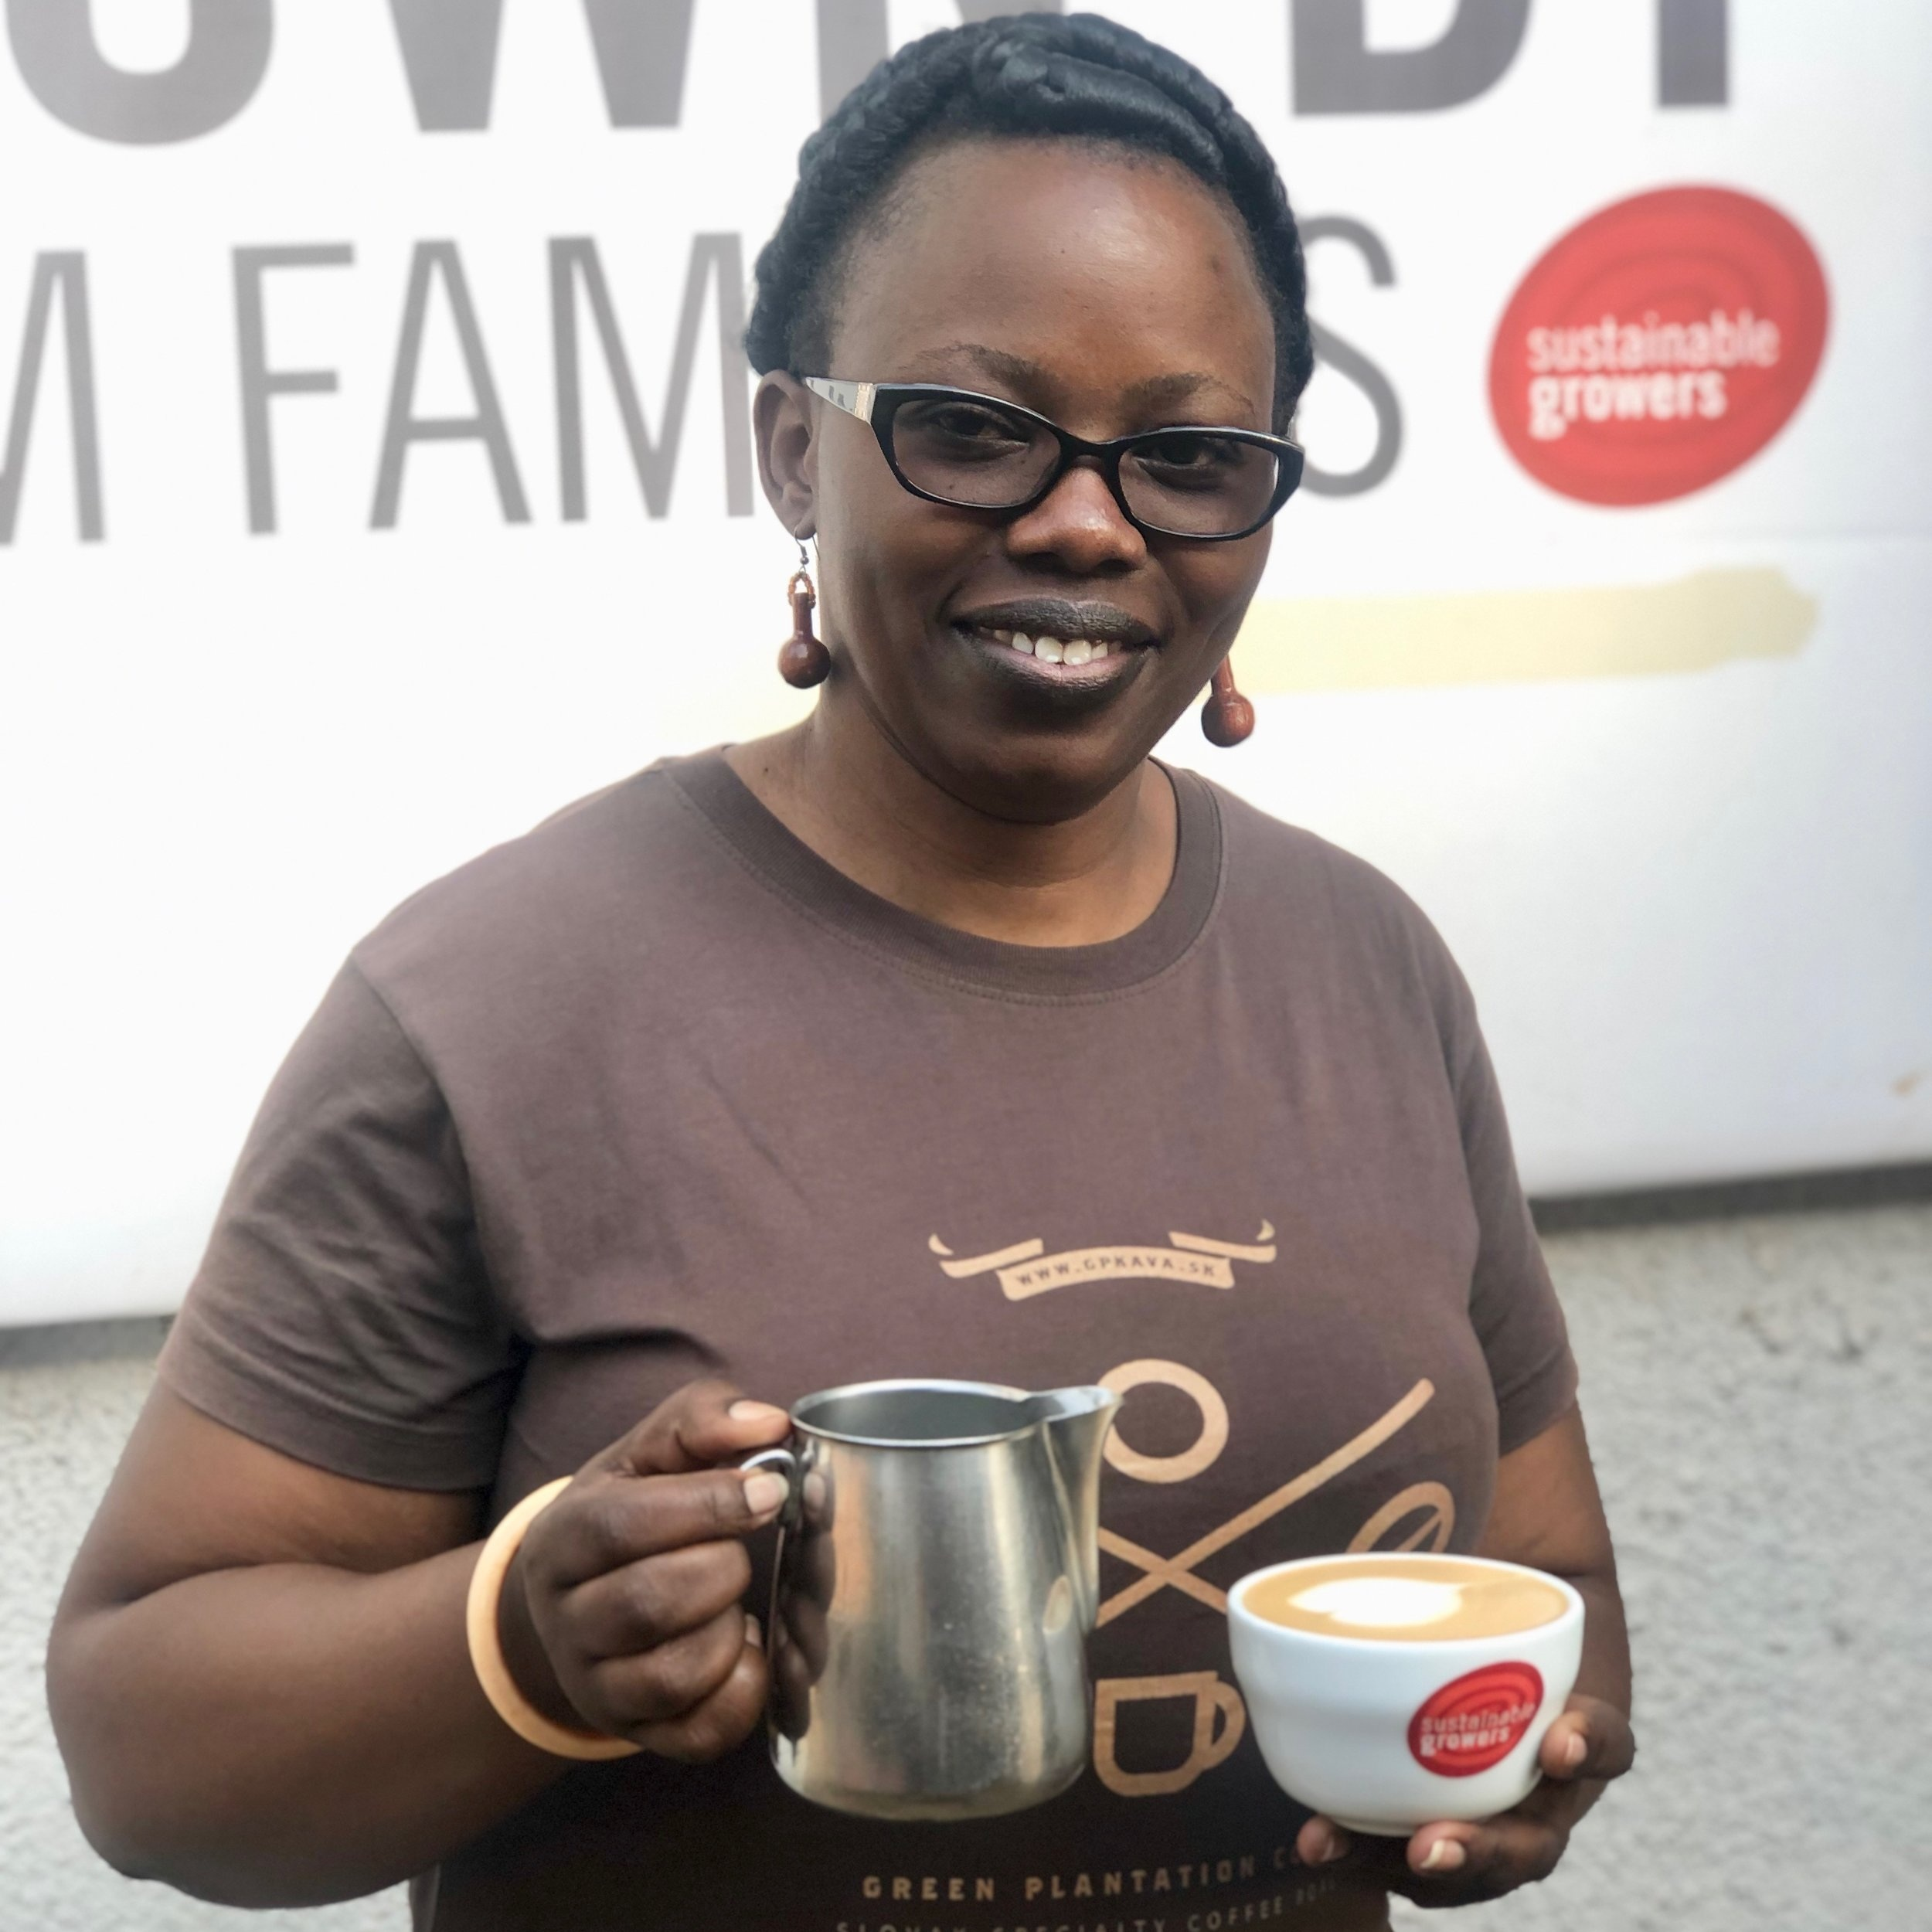 Perpetue Mukamusinga - Barista Training ManagerSustainable Growers Rwanda / Question Coffee CentreIn 2008, Perpetue began working at Bourbon coffee as head barista, later moving to Neo cafe as a coffee quality control in 2014. in 2016, she joined Sustainable Growers and Question Coffee a barista training manager. She was the first woman barista in Rwanda and has now been working in coffee for over 10 years. She is also certified by SCA in brewing and barista skills at the professional level.